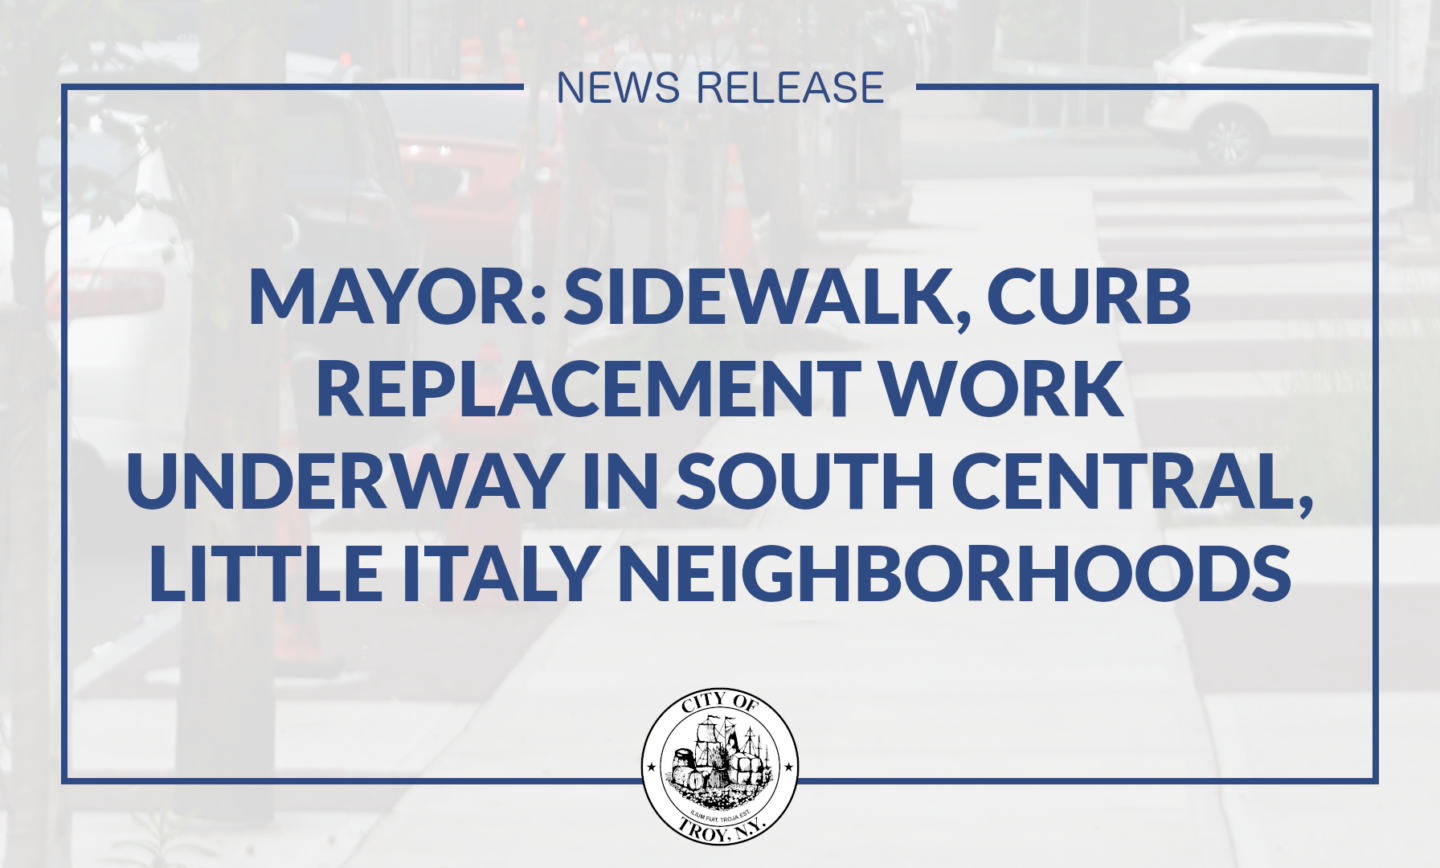 Mayor Madden: Sidewalk, Curb Replacement Work Underway in South Central, Little Italy Neighborhoods